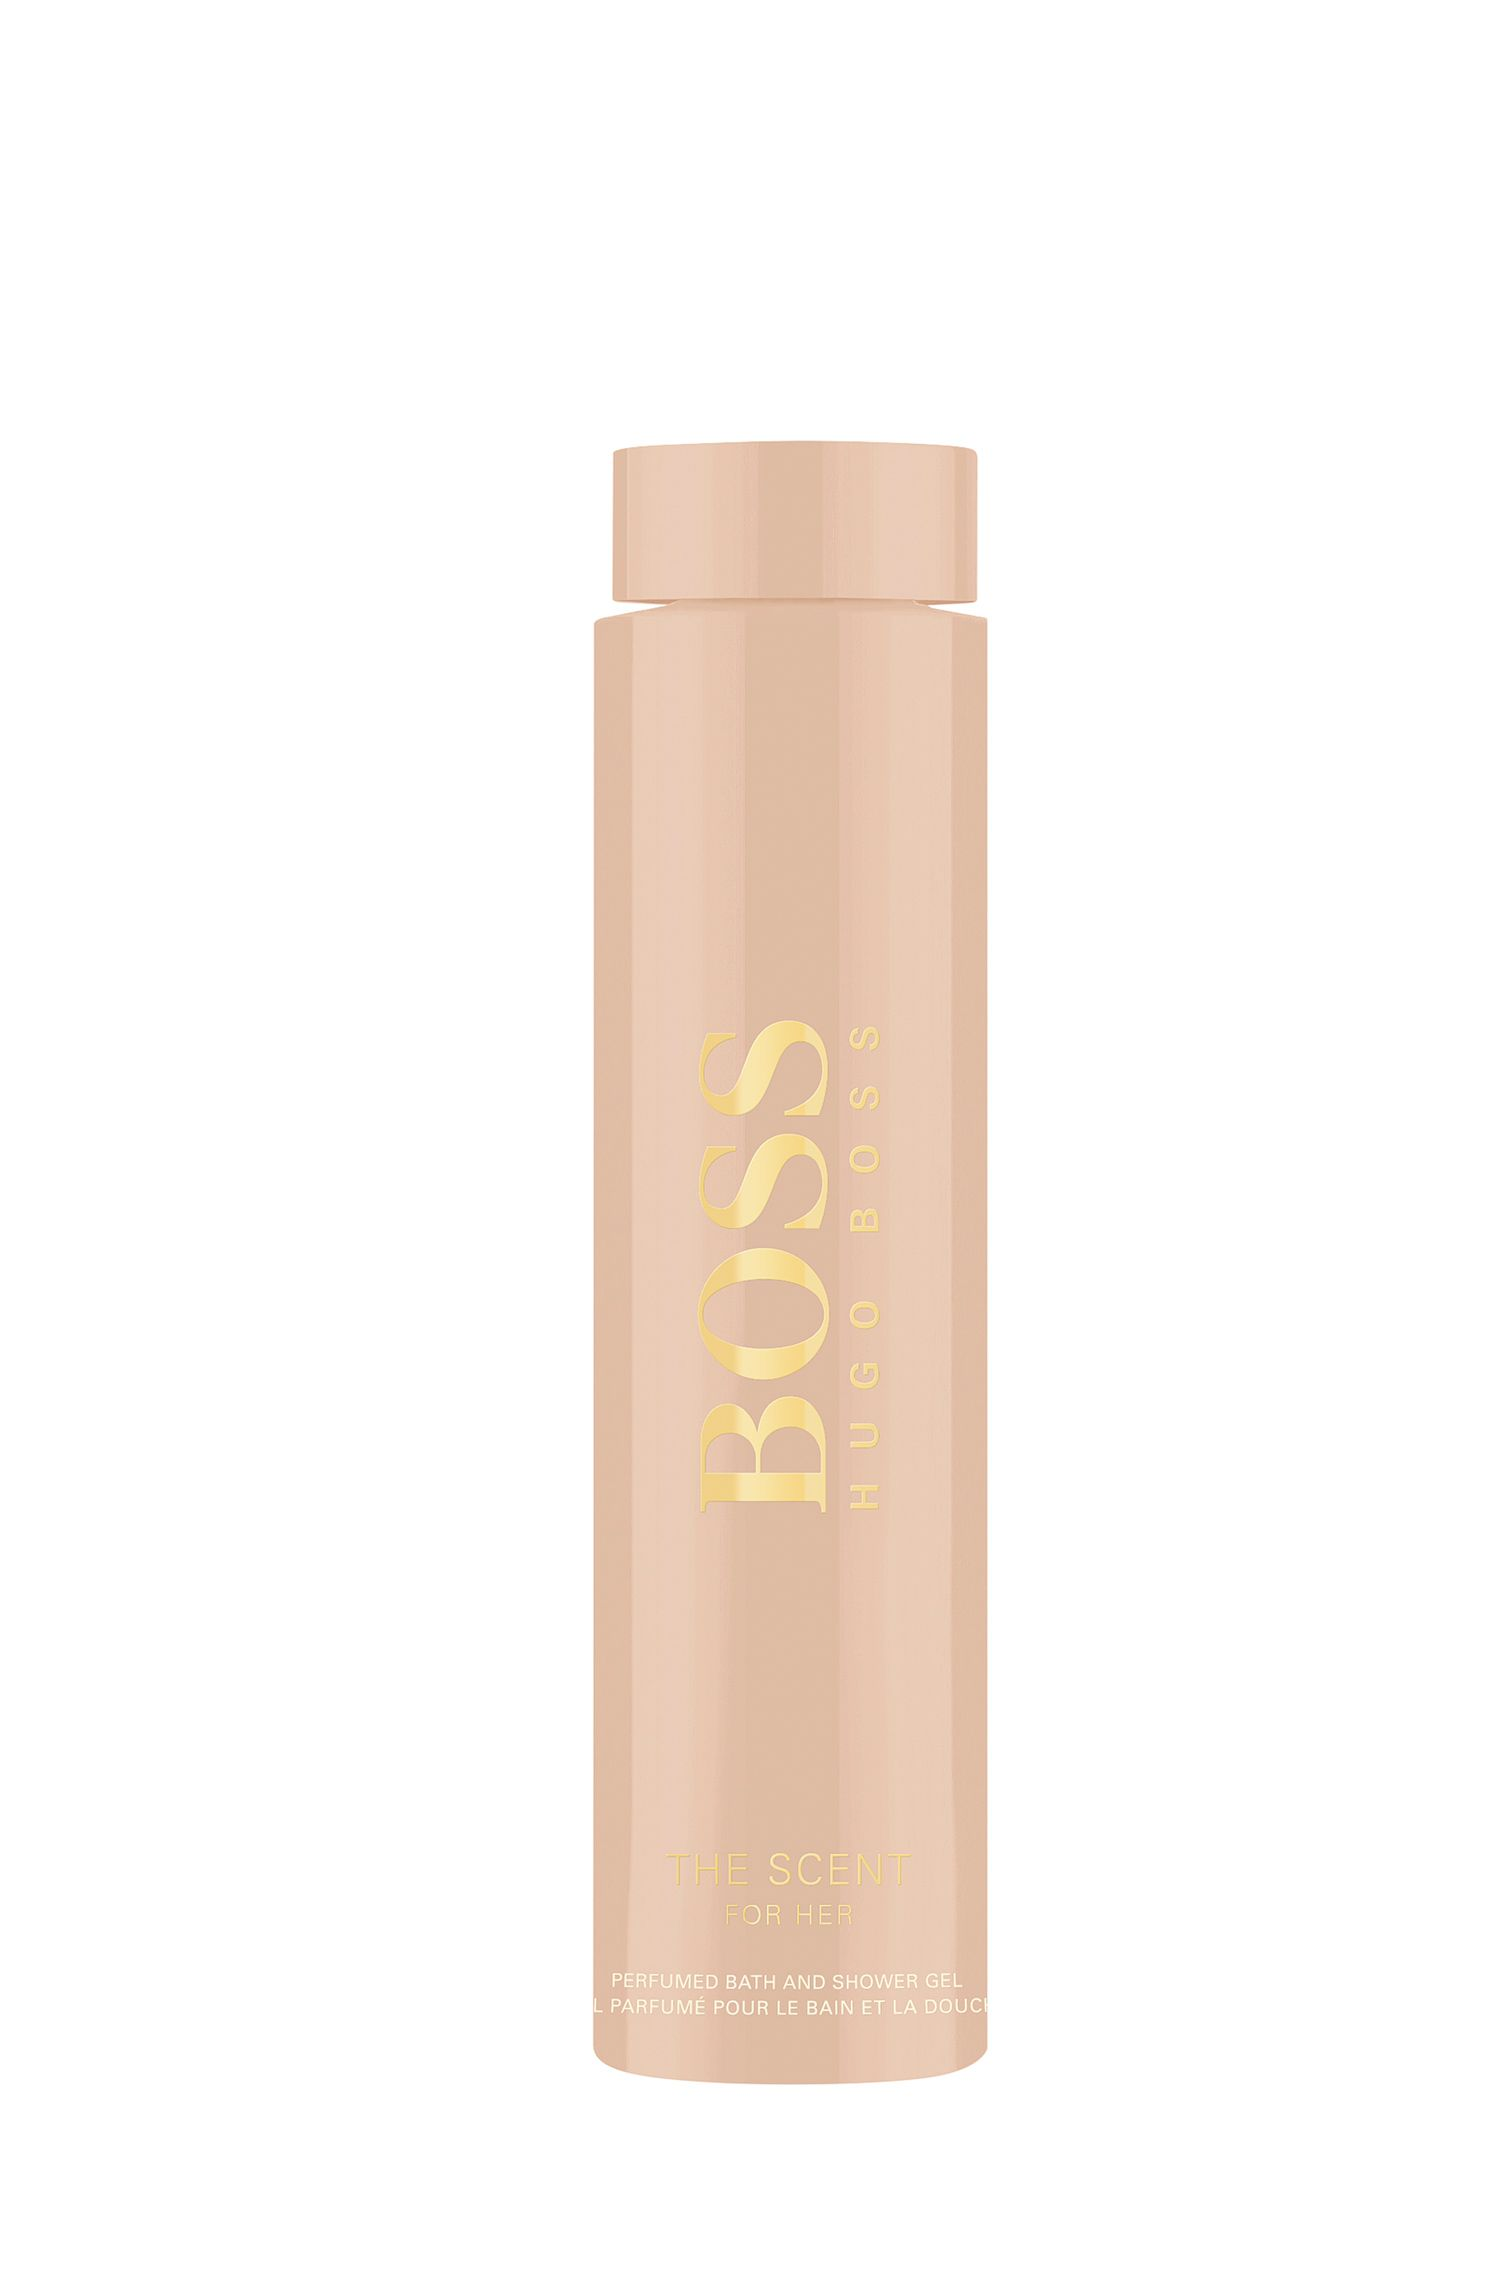 BOSS The Scent for Her douchegel 200 ml